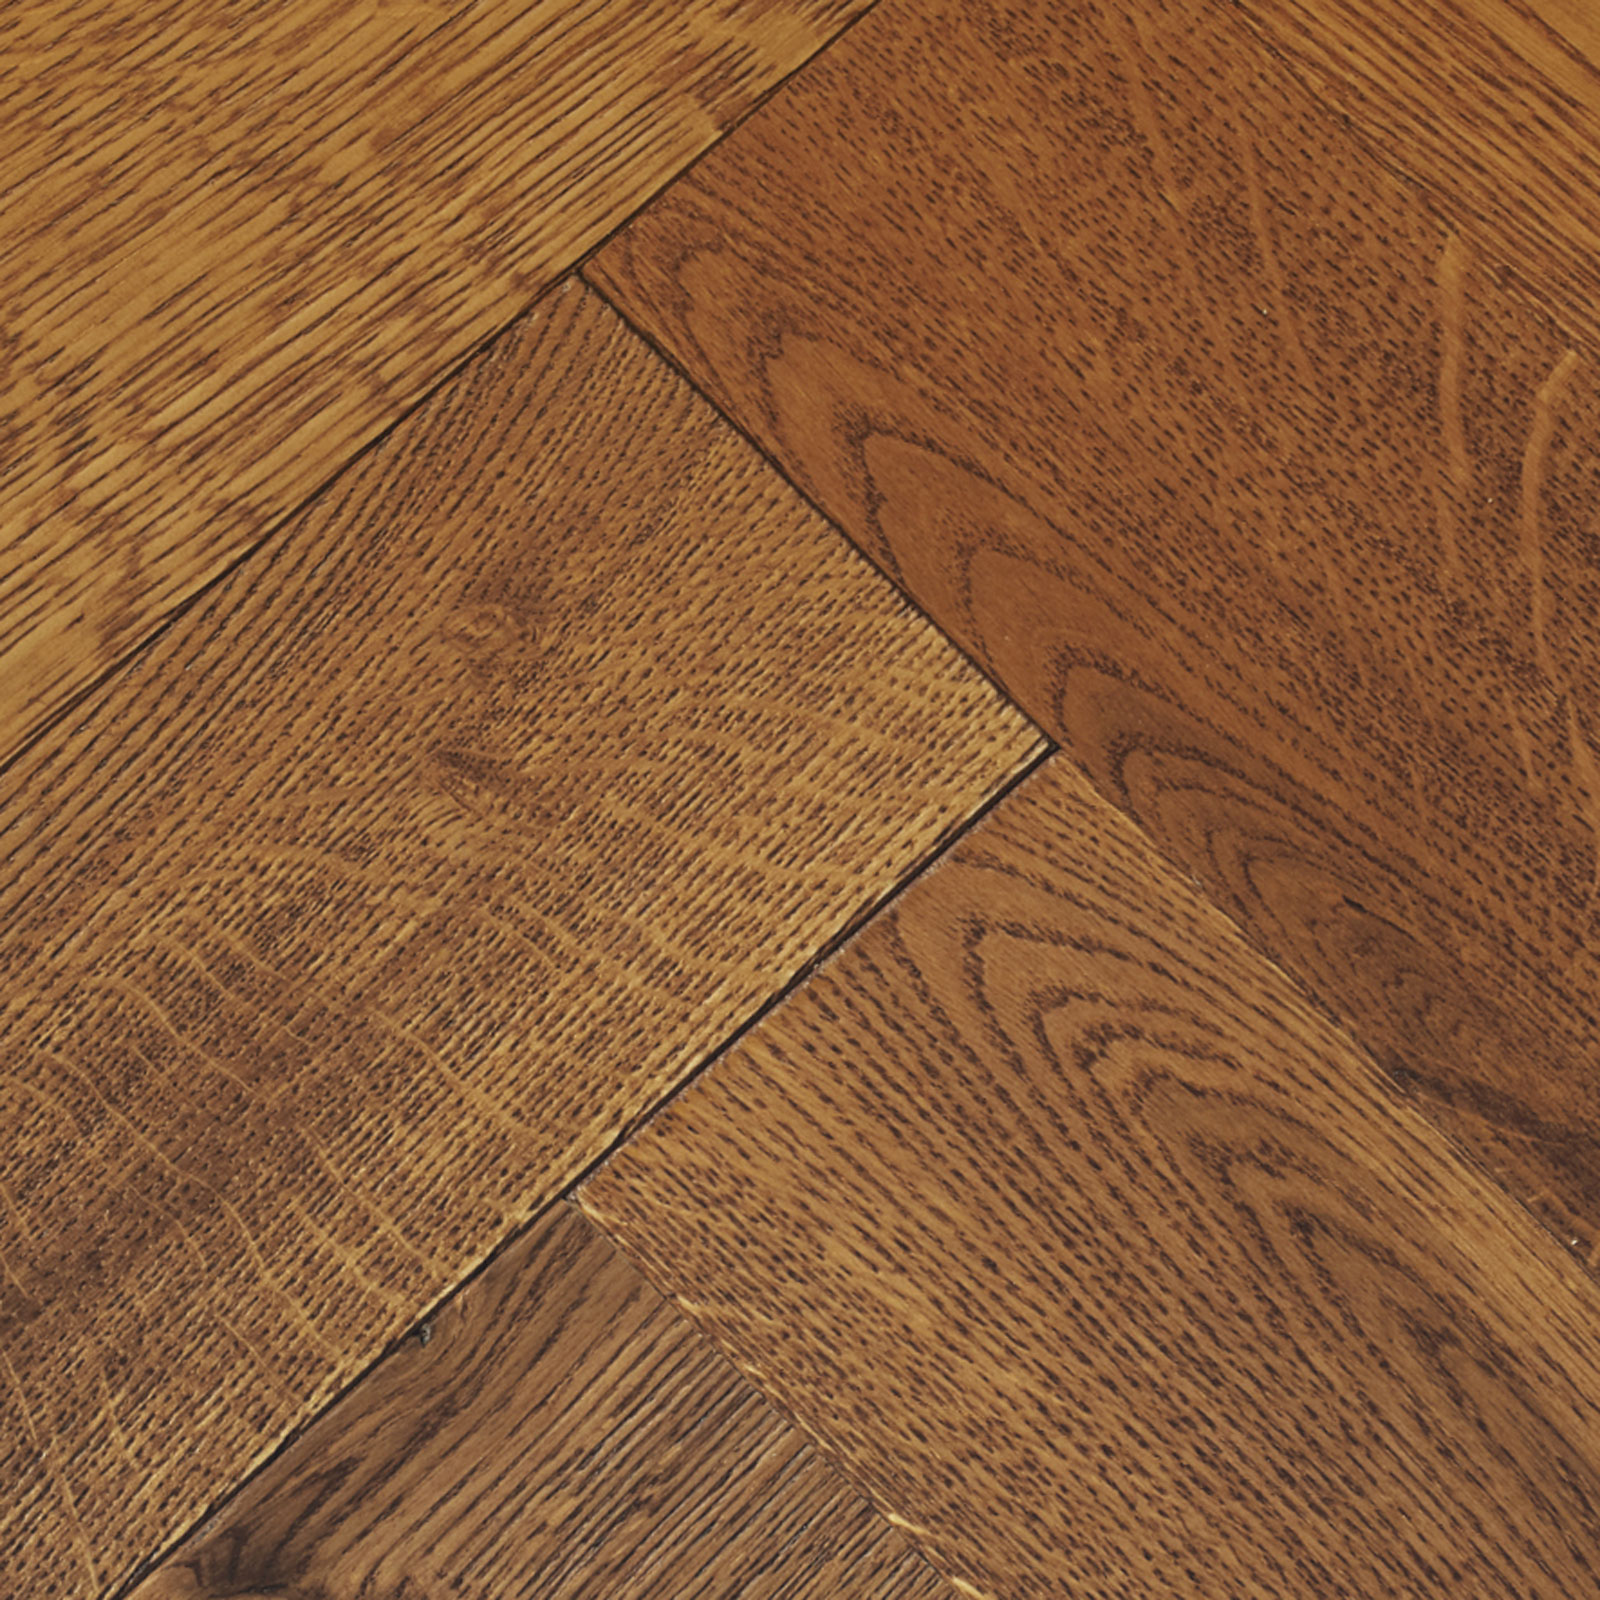 Goodrich coffee oak parquet flooring woodpecker flooring for Parquet hardwood flooring